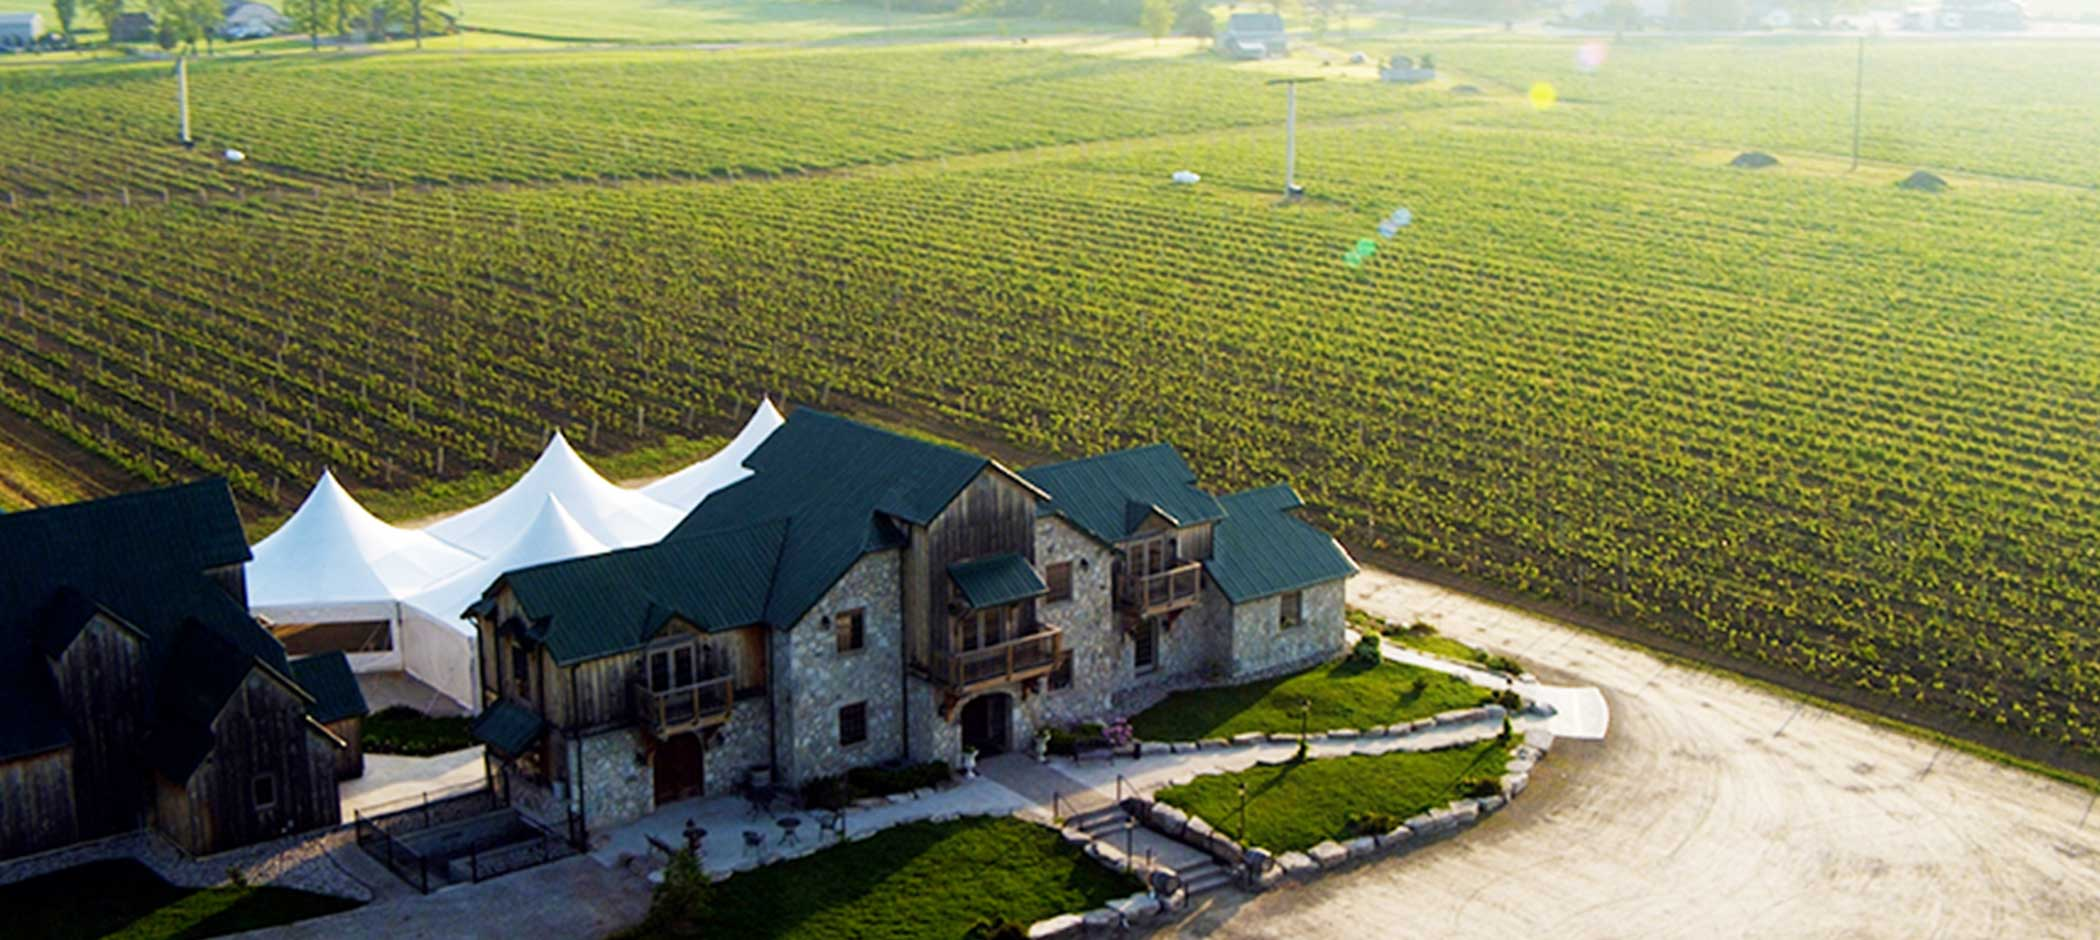 Tourism Windsor Essex Pelee Island Sprucewood Shores Winery